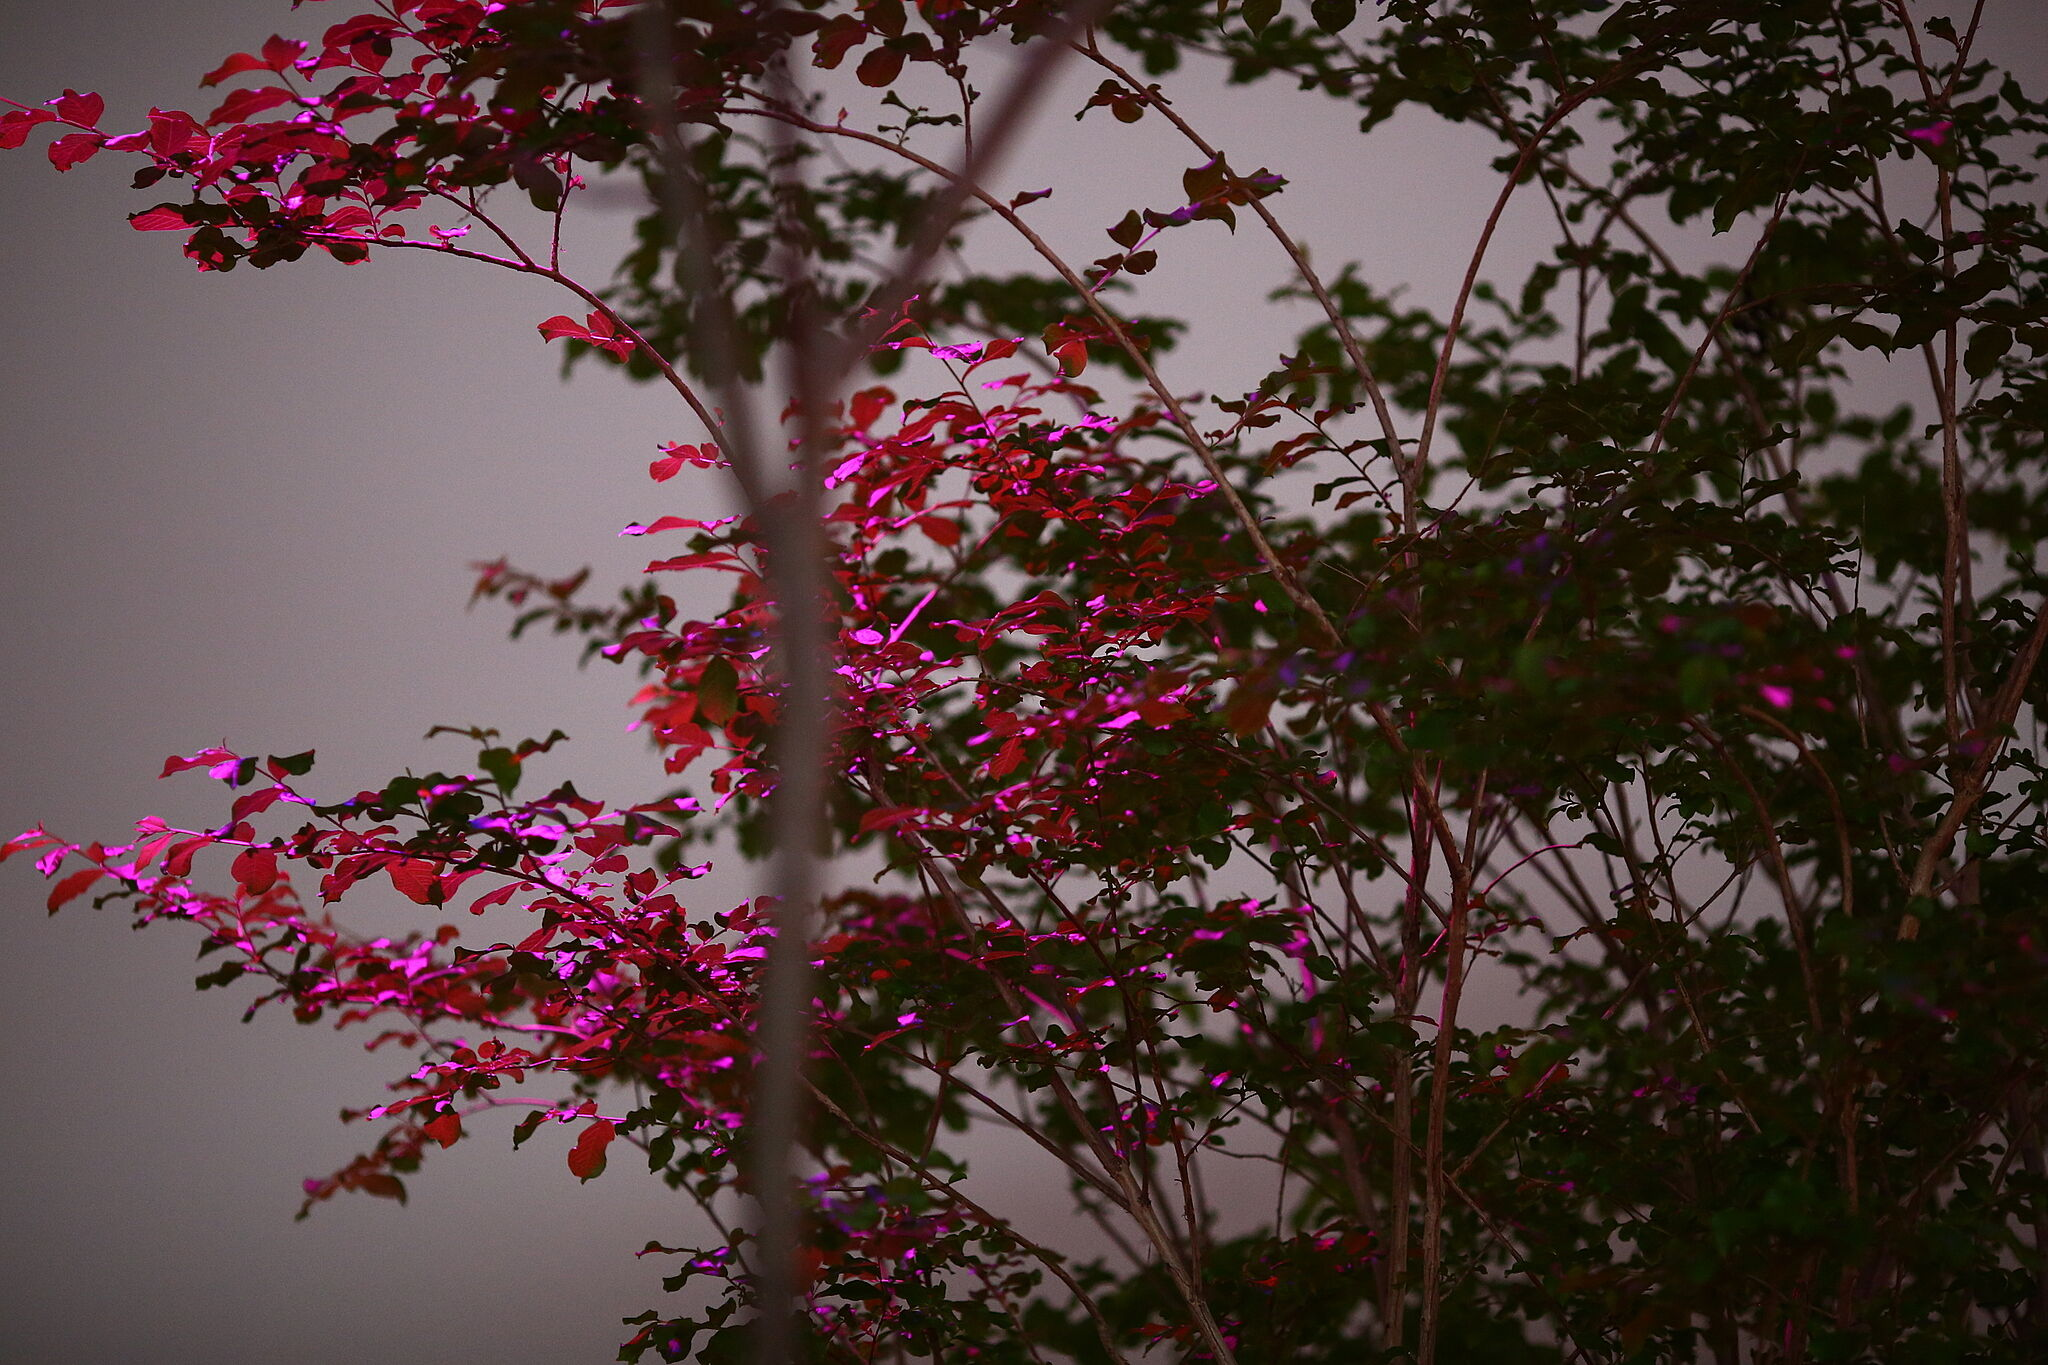 Tree leaves in bright pink light.